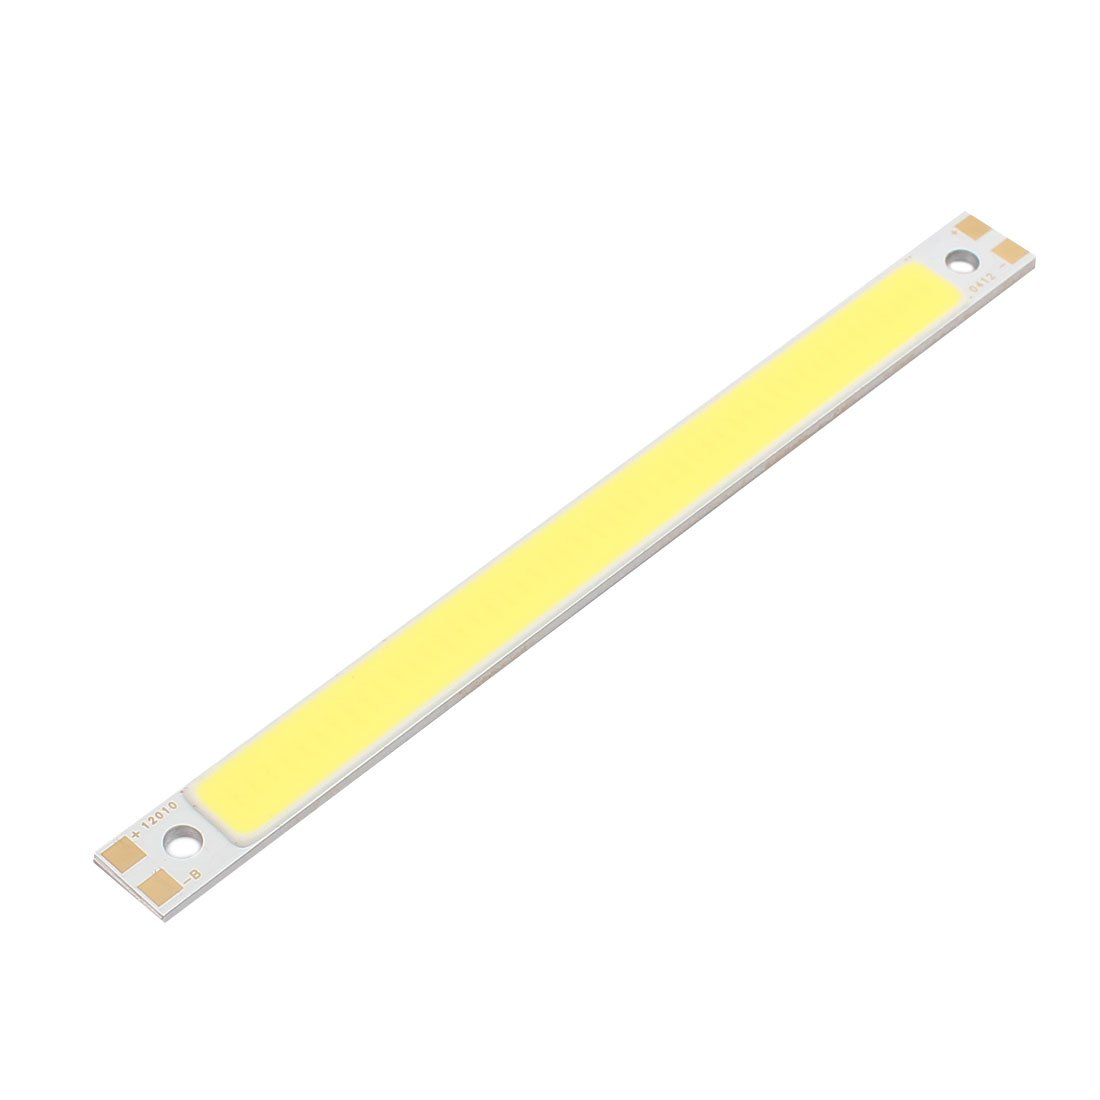 uxcell 300mA 3W COB LED Strip Light Lamp Chip Pure White High Power 100mmx9mm Luminous Surface